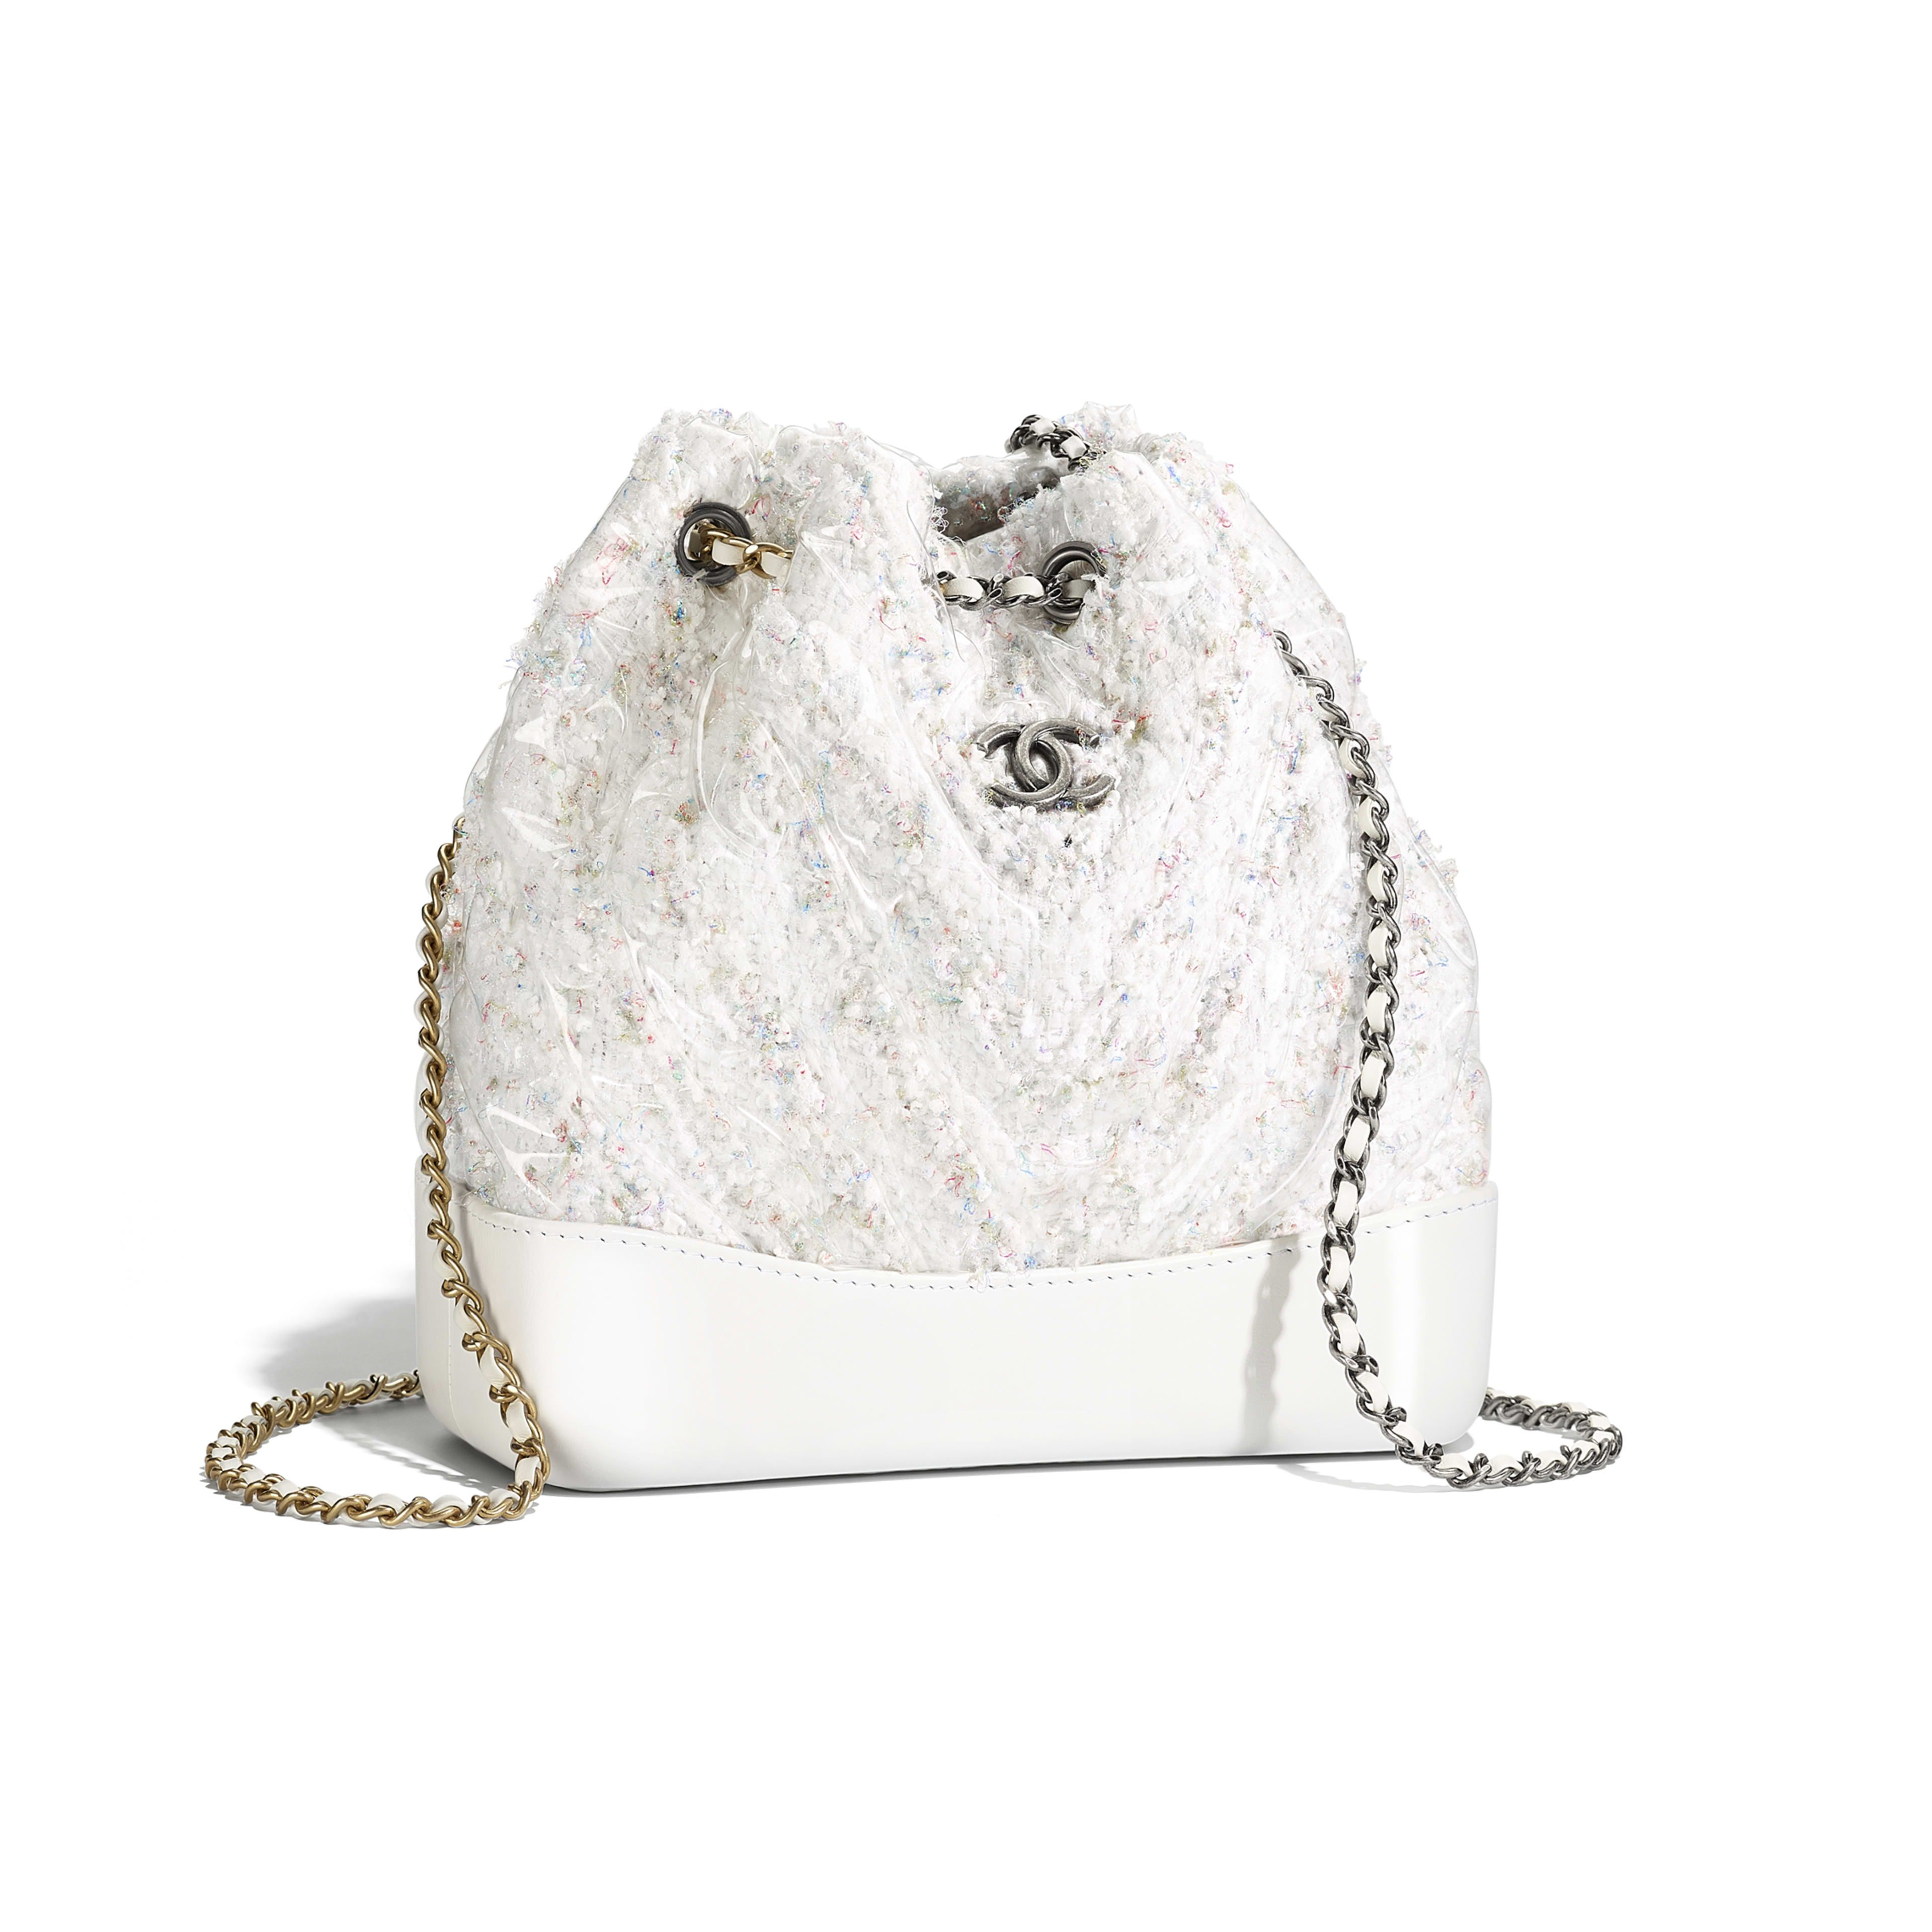 5742da799dd0 CHANEL'S GABRIELLE Small Backpack Tweed, PVC, Patent Calfskin, Silver-Tone  & Gold-Tone Metal White - view 1 - see full sized version